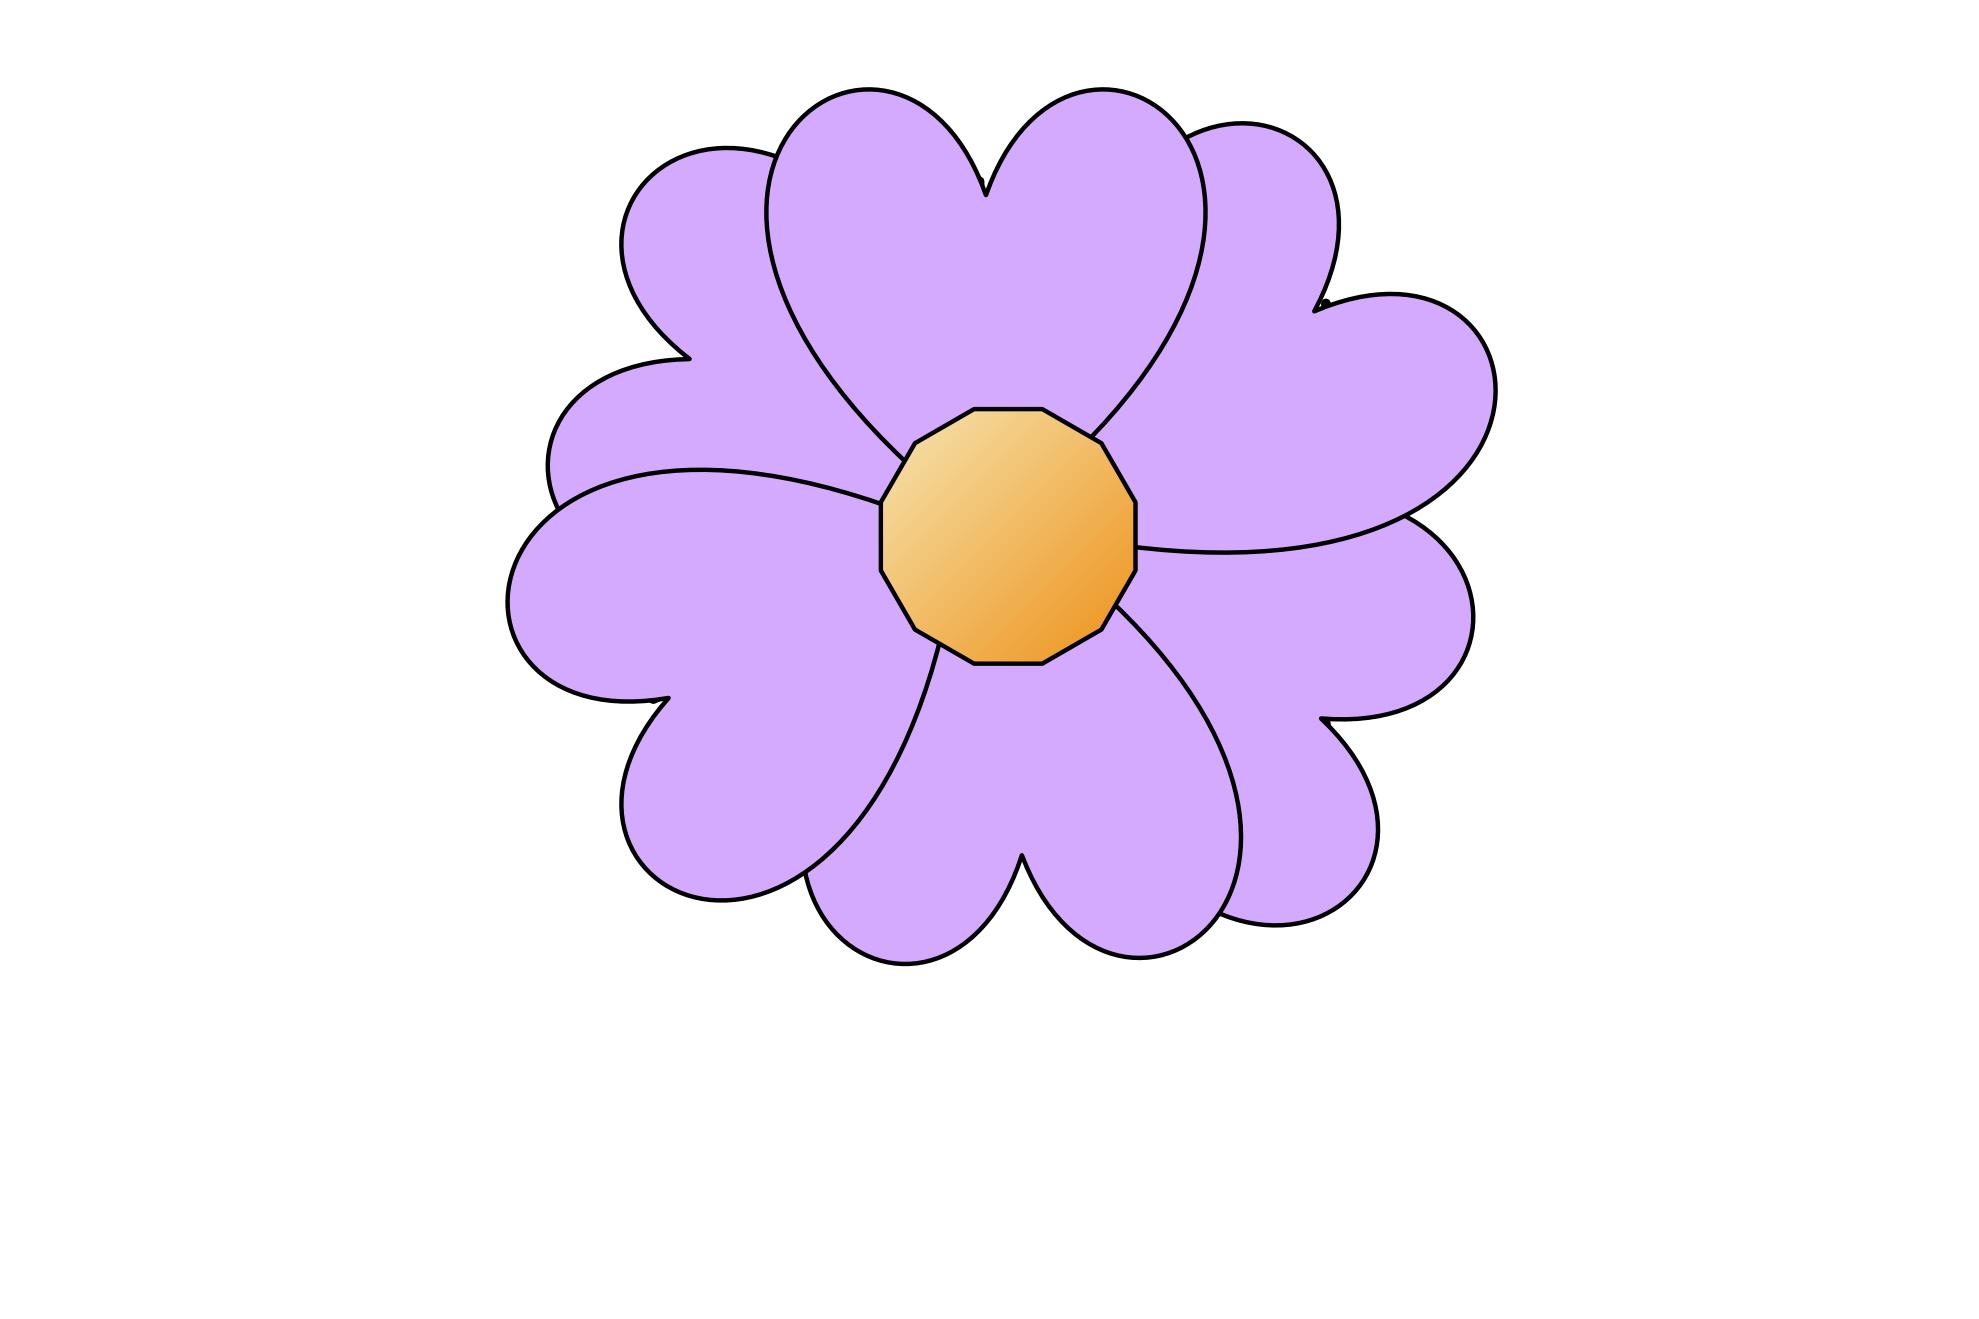 Clipart Flower Easy Clipart Flower Easy Transparent Free For Download On Webstockreview 2021